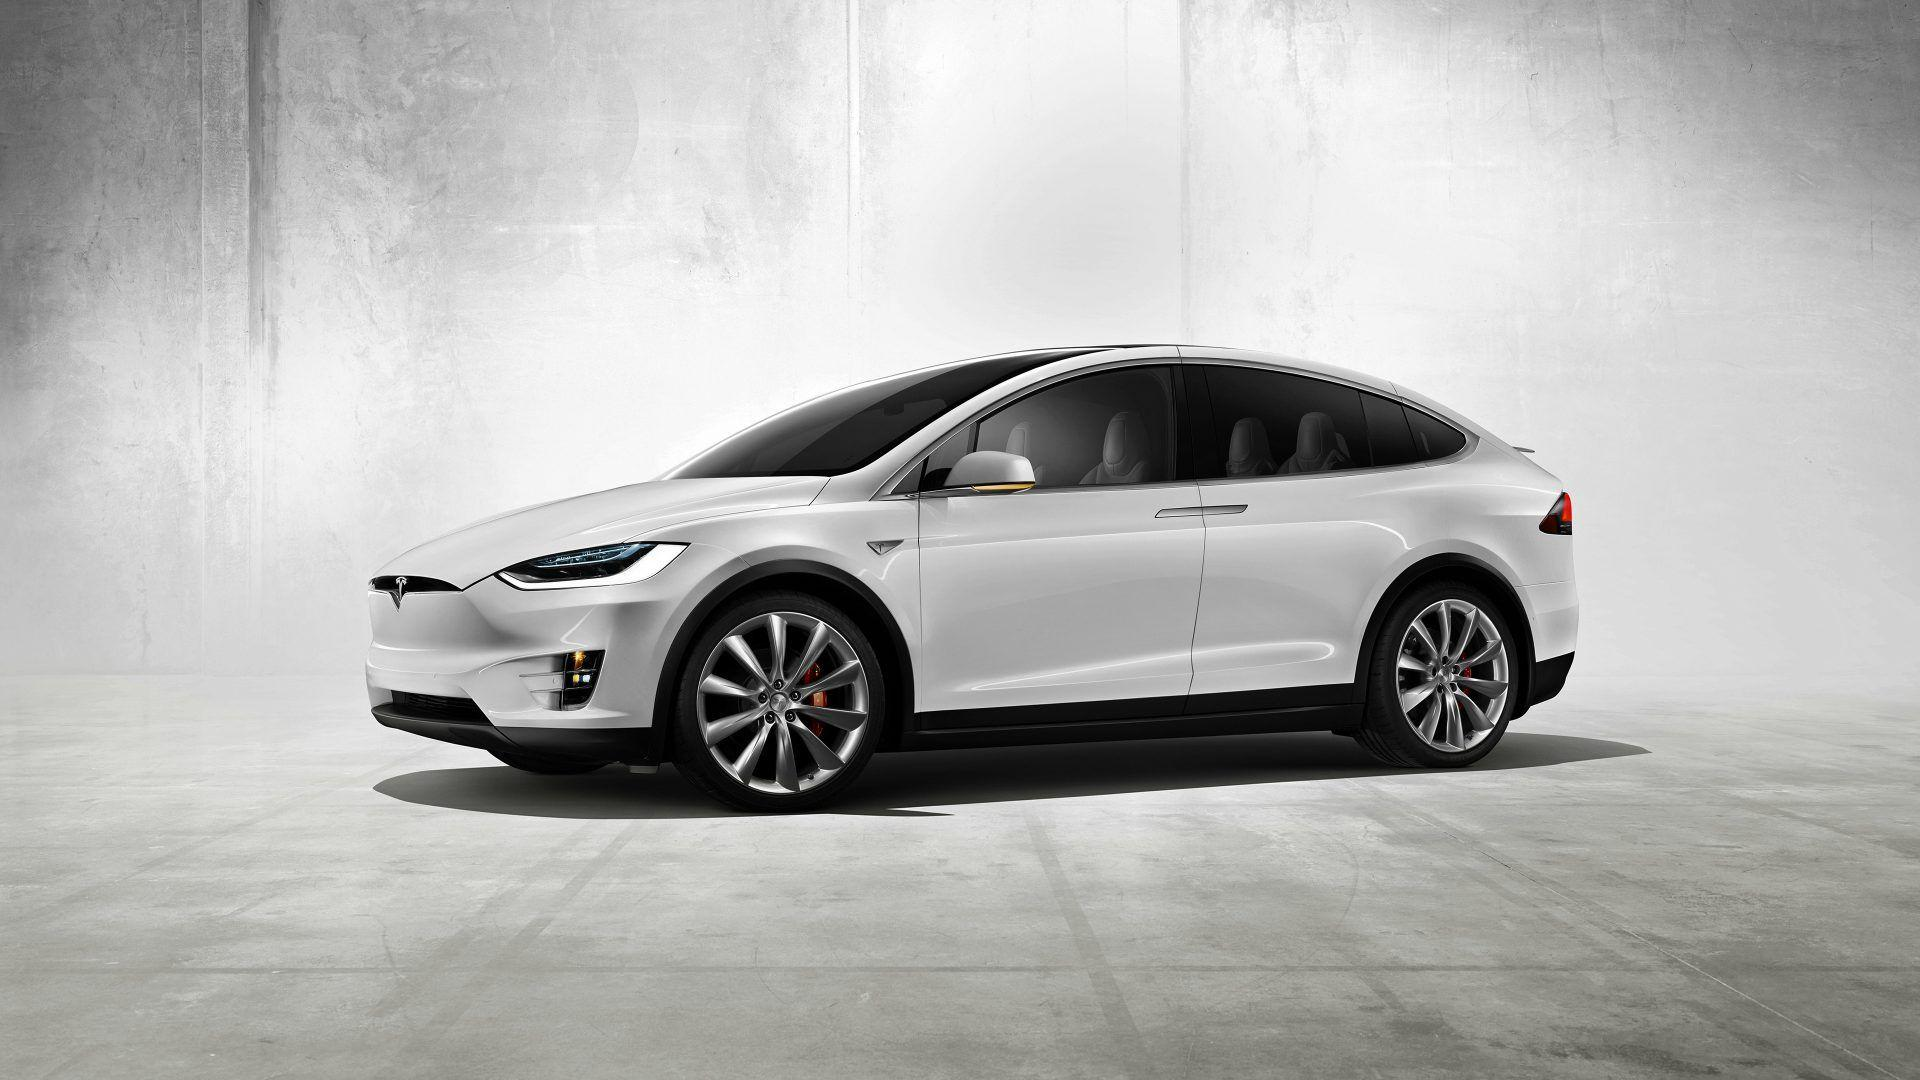 Cars image 4k backgrounds hd wallpapers picture tesla model x concept